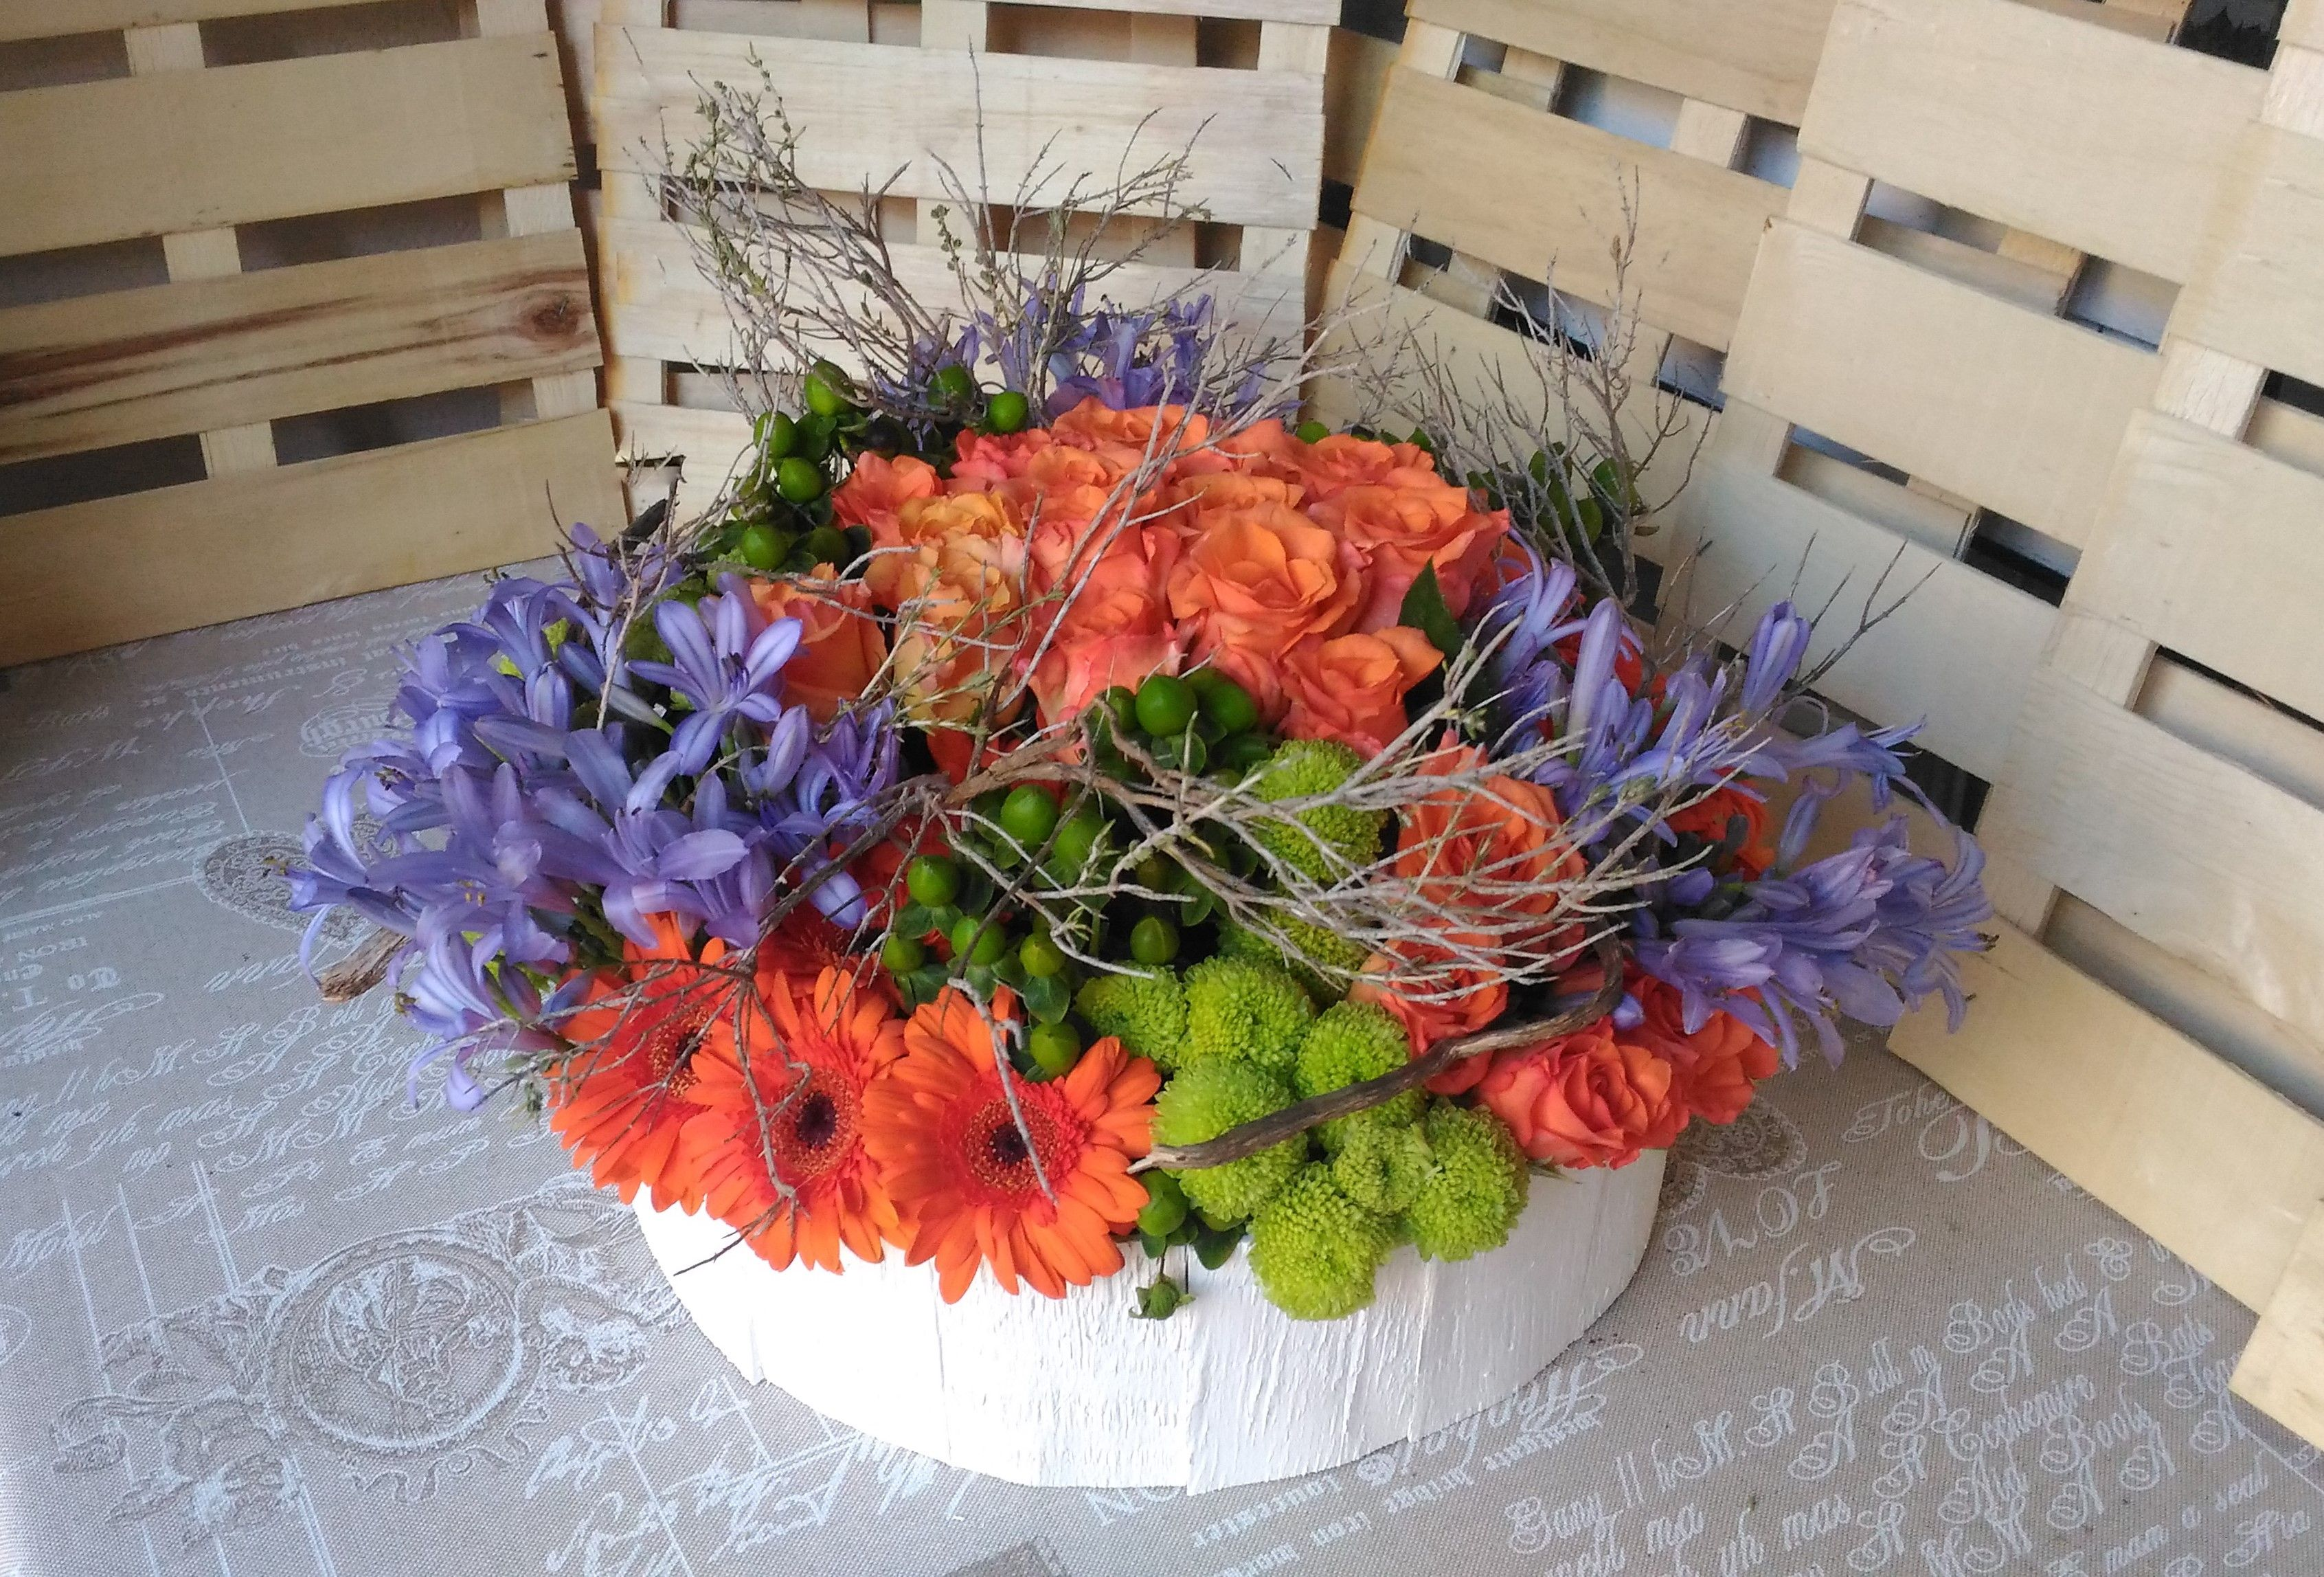 Orange centertable with blue agapanthus